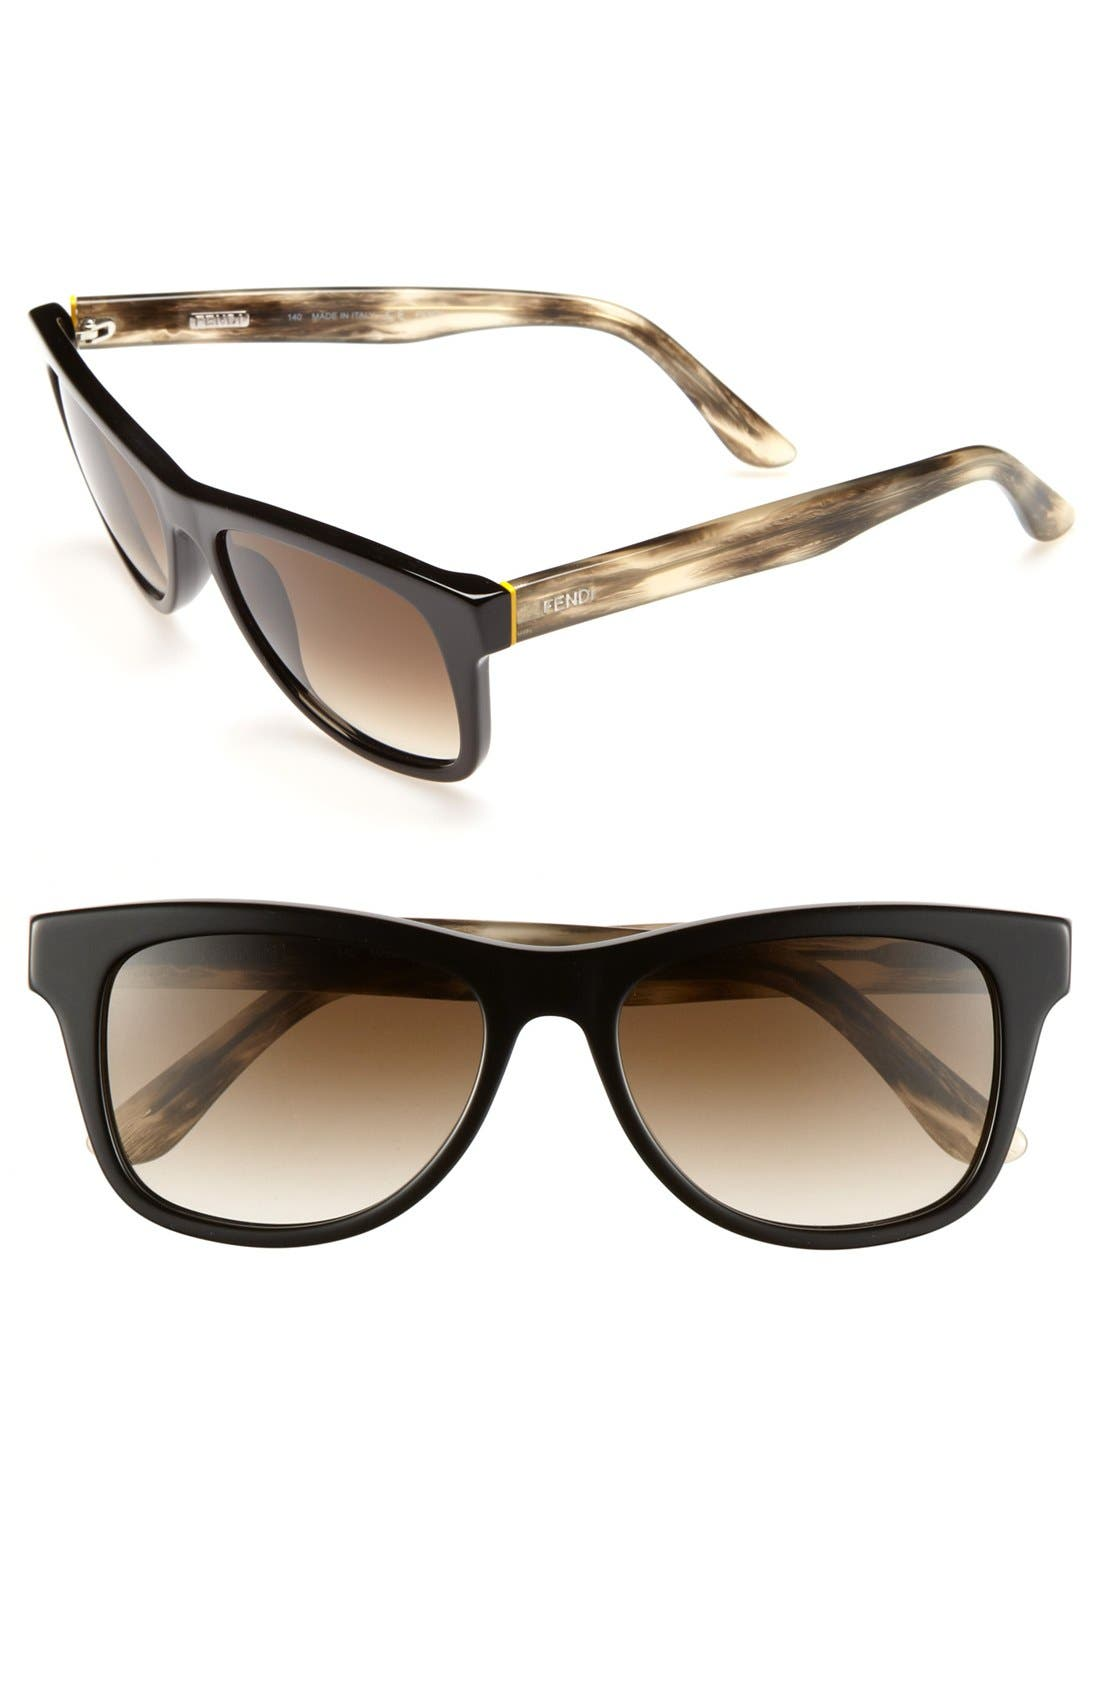 Alternate Image 1 Selected - Fendi 53mm Retro Sunglasses